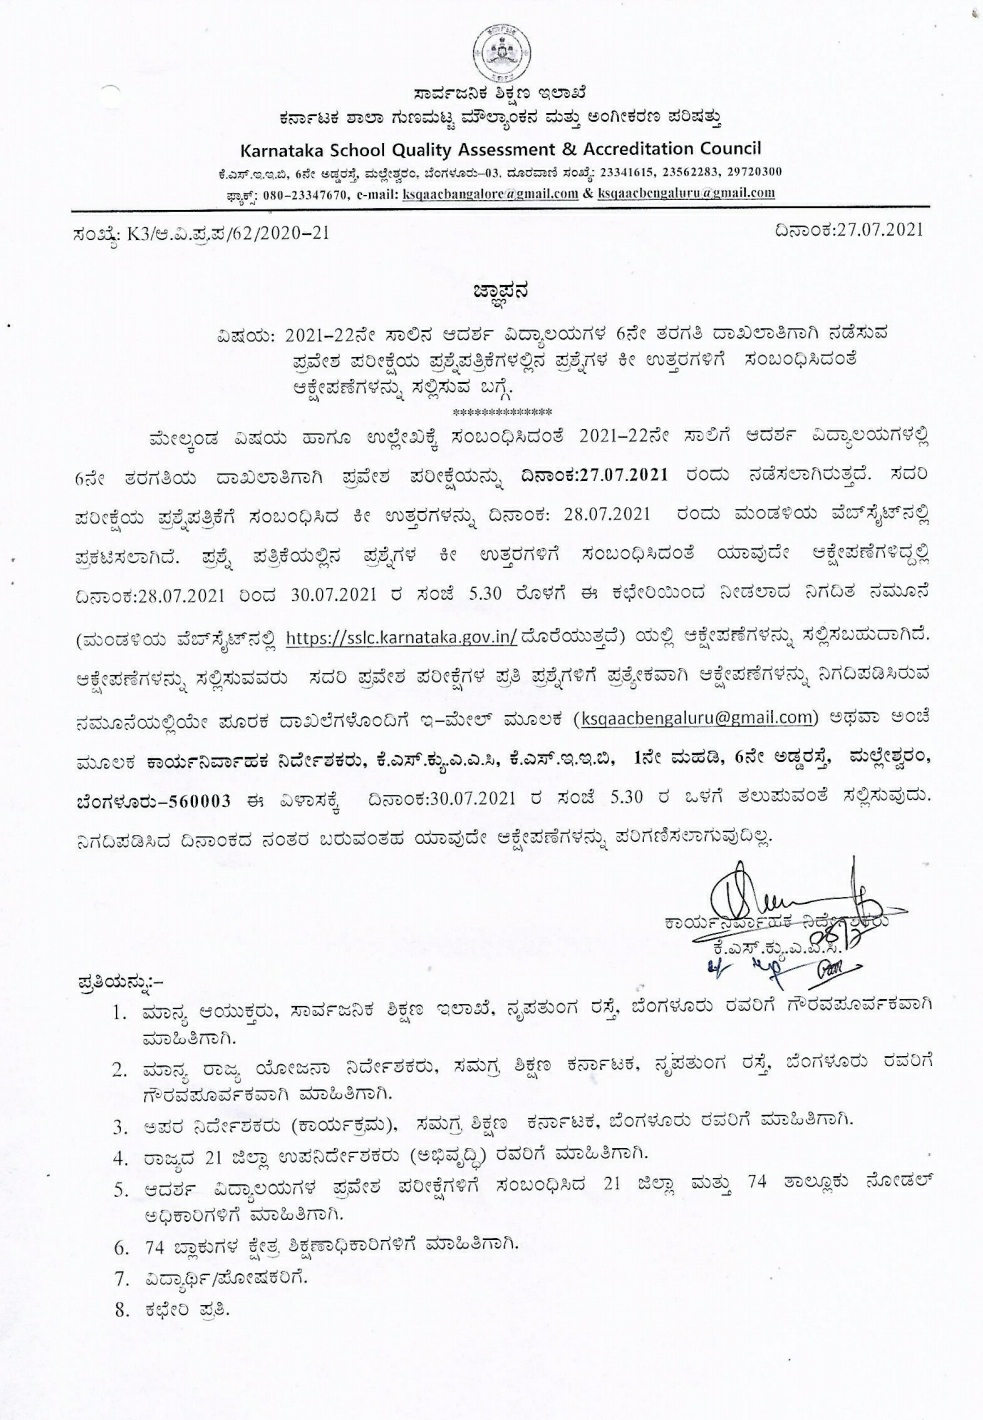 Circular for Submission of Objections to the Key Answers of the Admissions Examination of the Vidyalaya, 2021-22: 28-07-2021